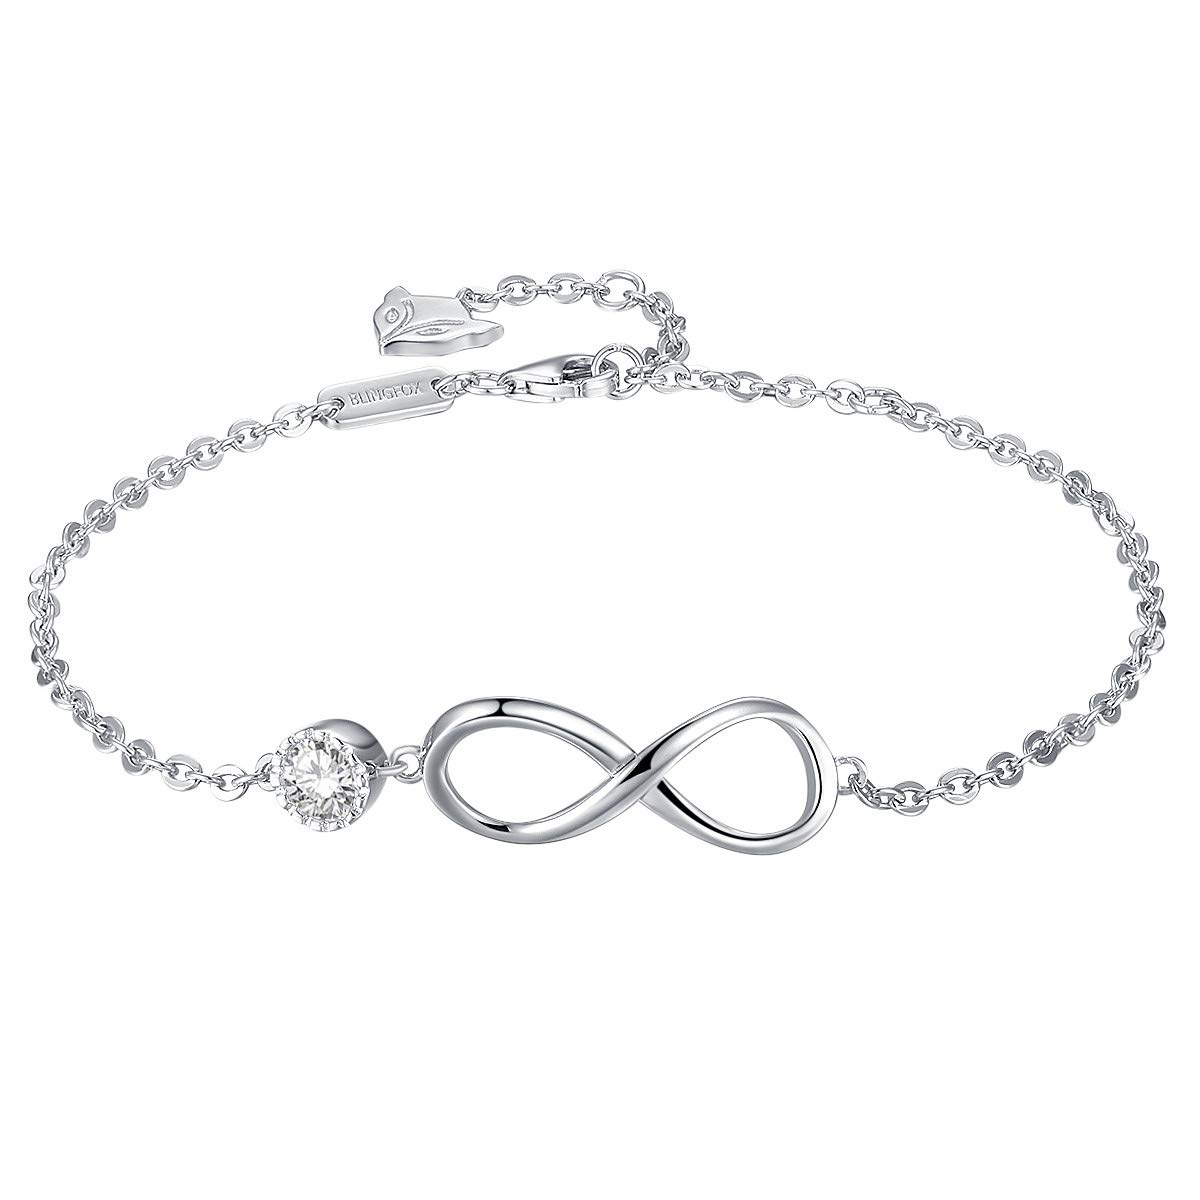 Blingfox 925 Sterling Silver Infinity Endless Love Bracelet